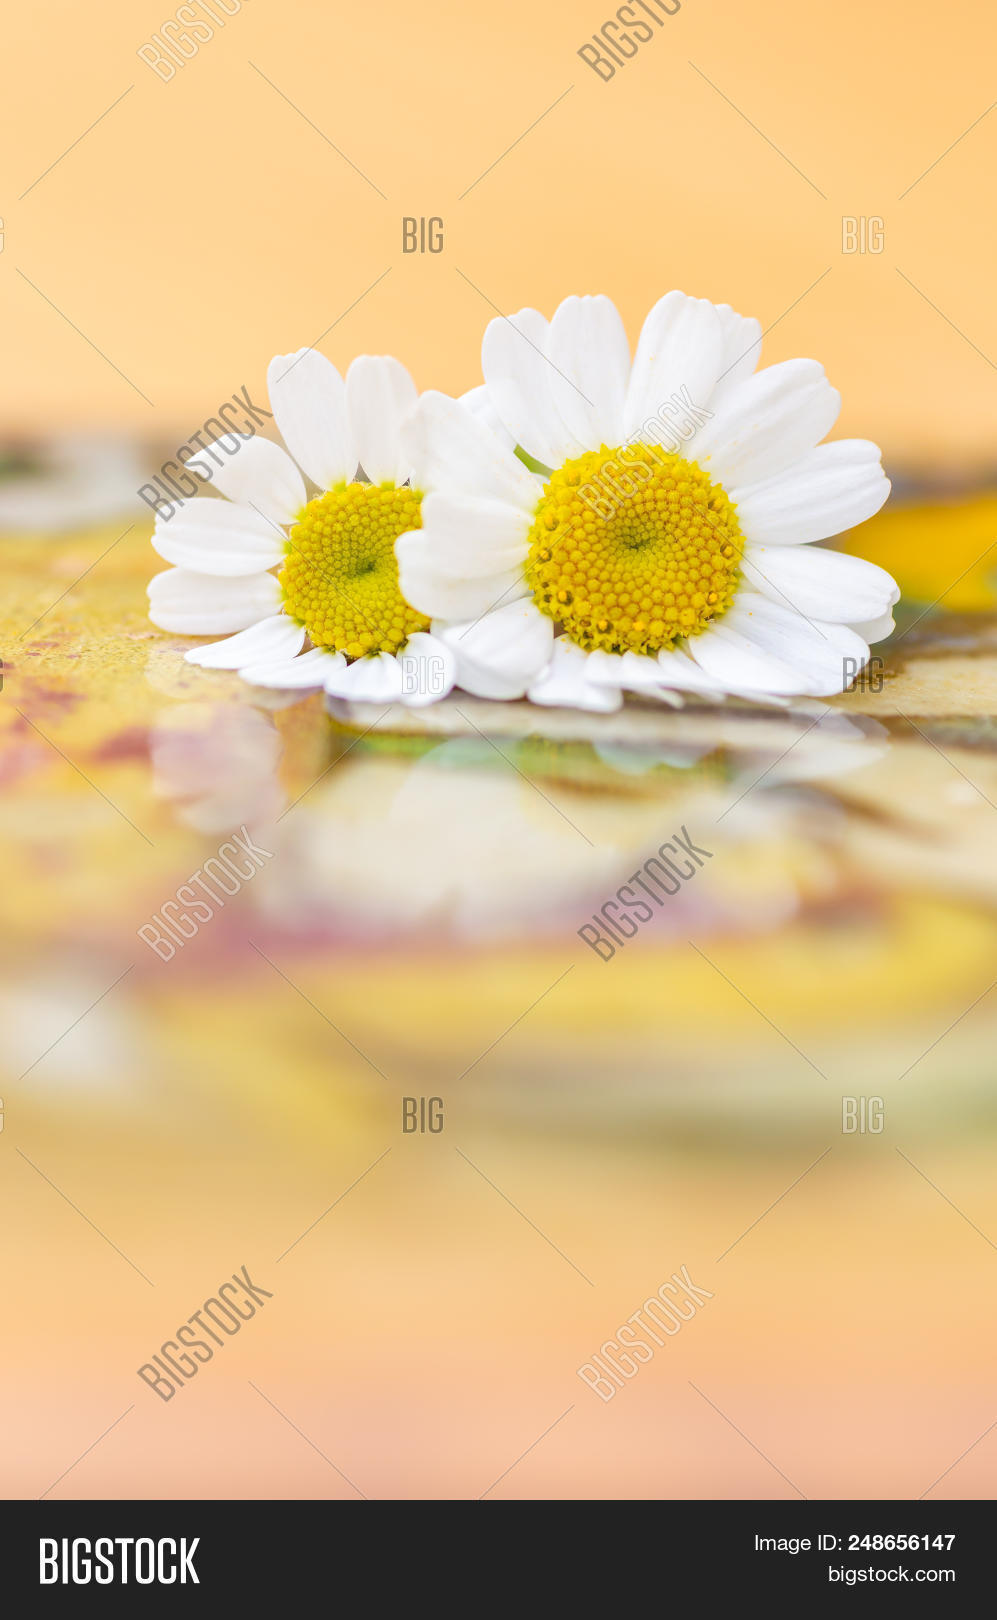 Feverfew flowers image photo free trial bigstock feverfew flowers close up of two daisy like flowers with a brightly lit colourful background izmirmasajfo